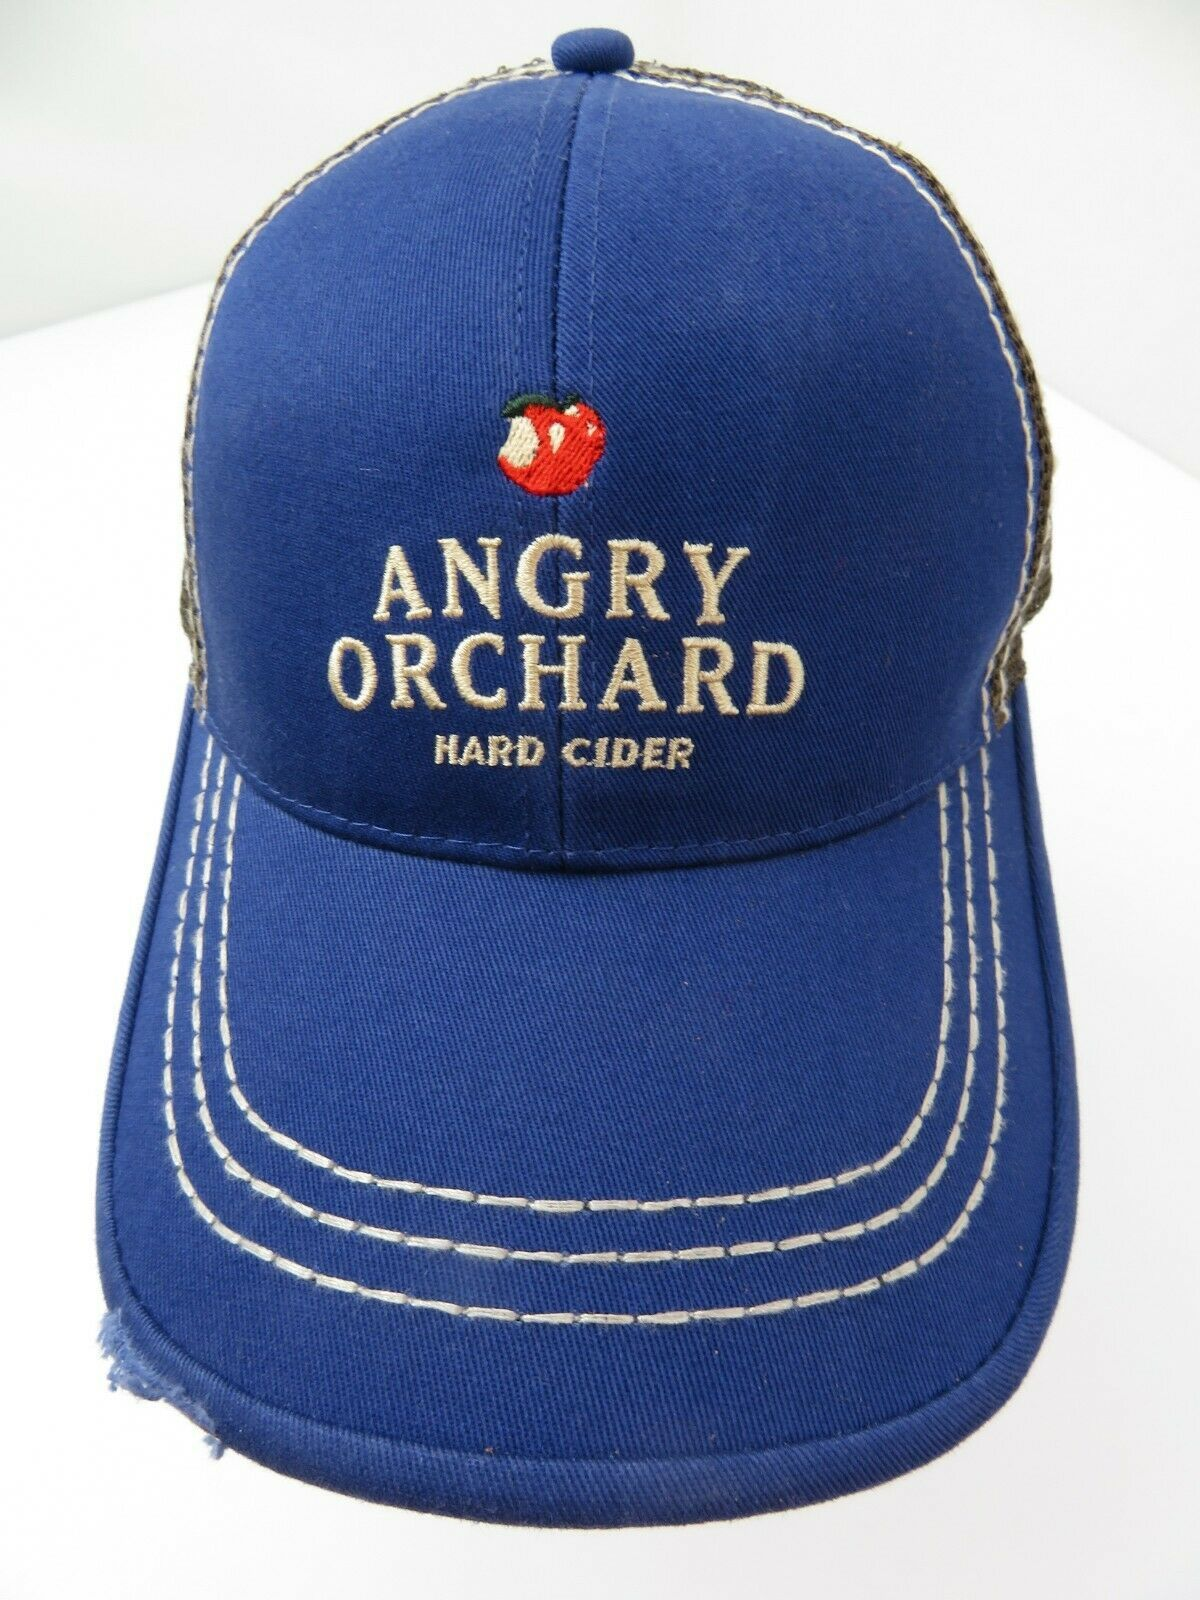 Primary image for Angry Orchard Hard Cider Snapback Adult Cap Hat